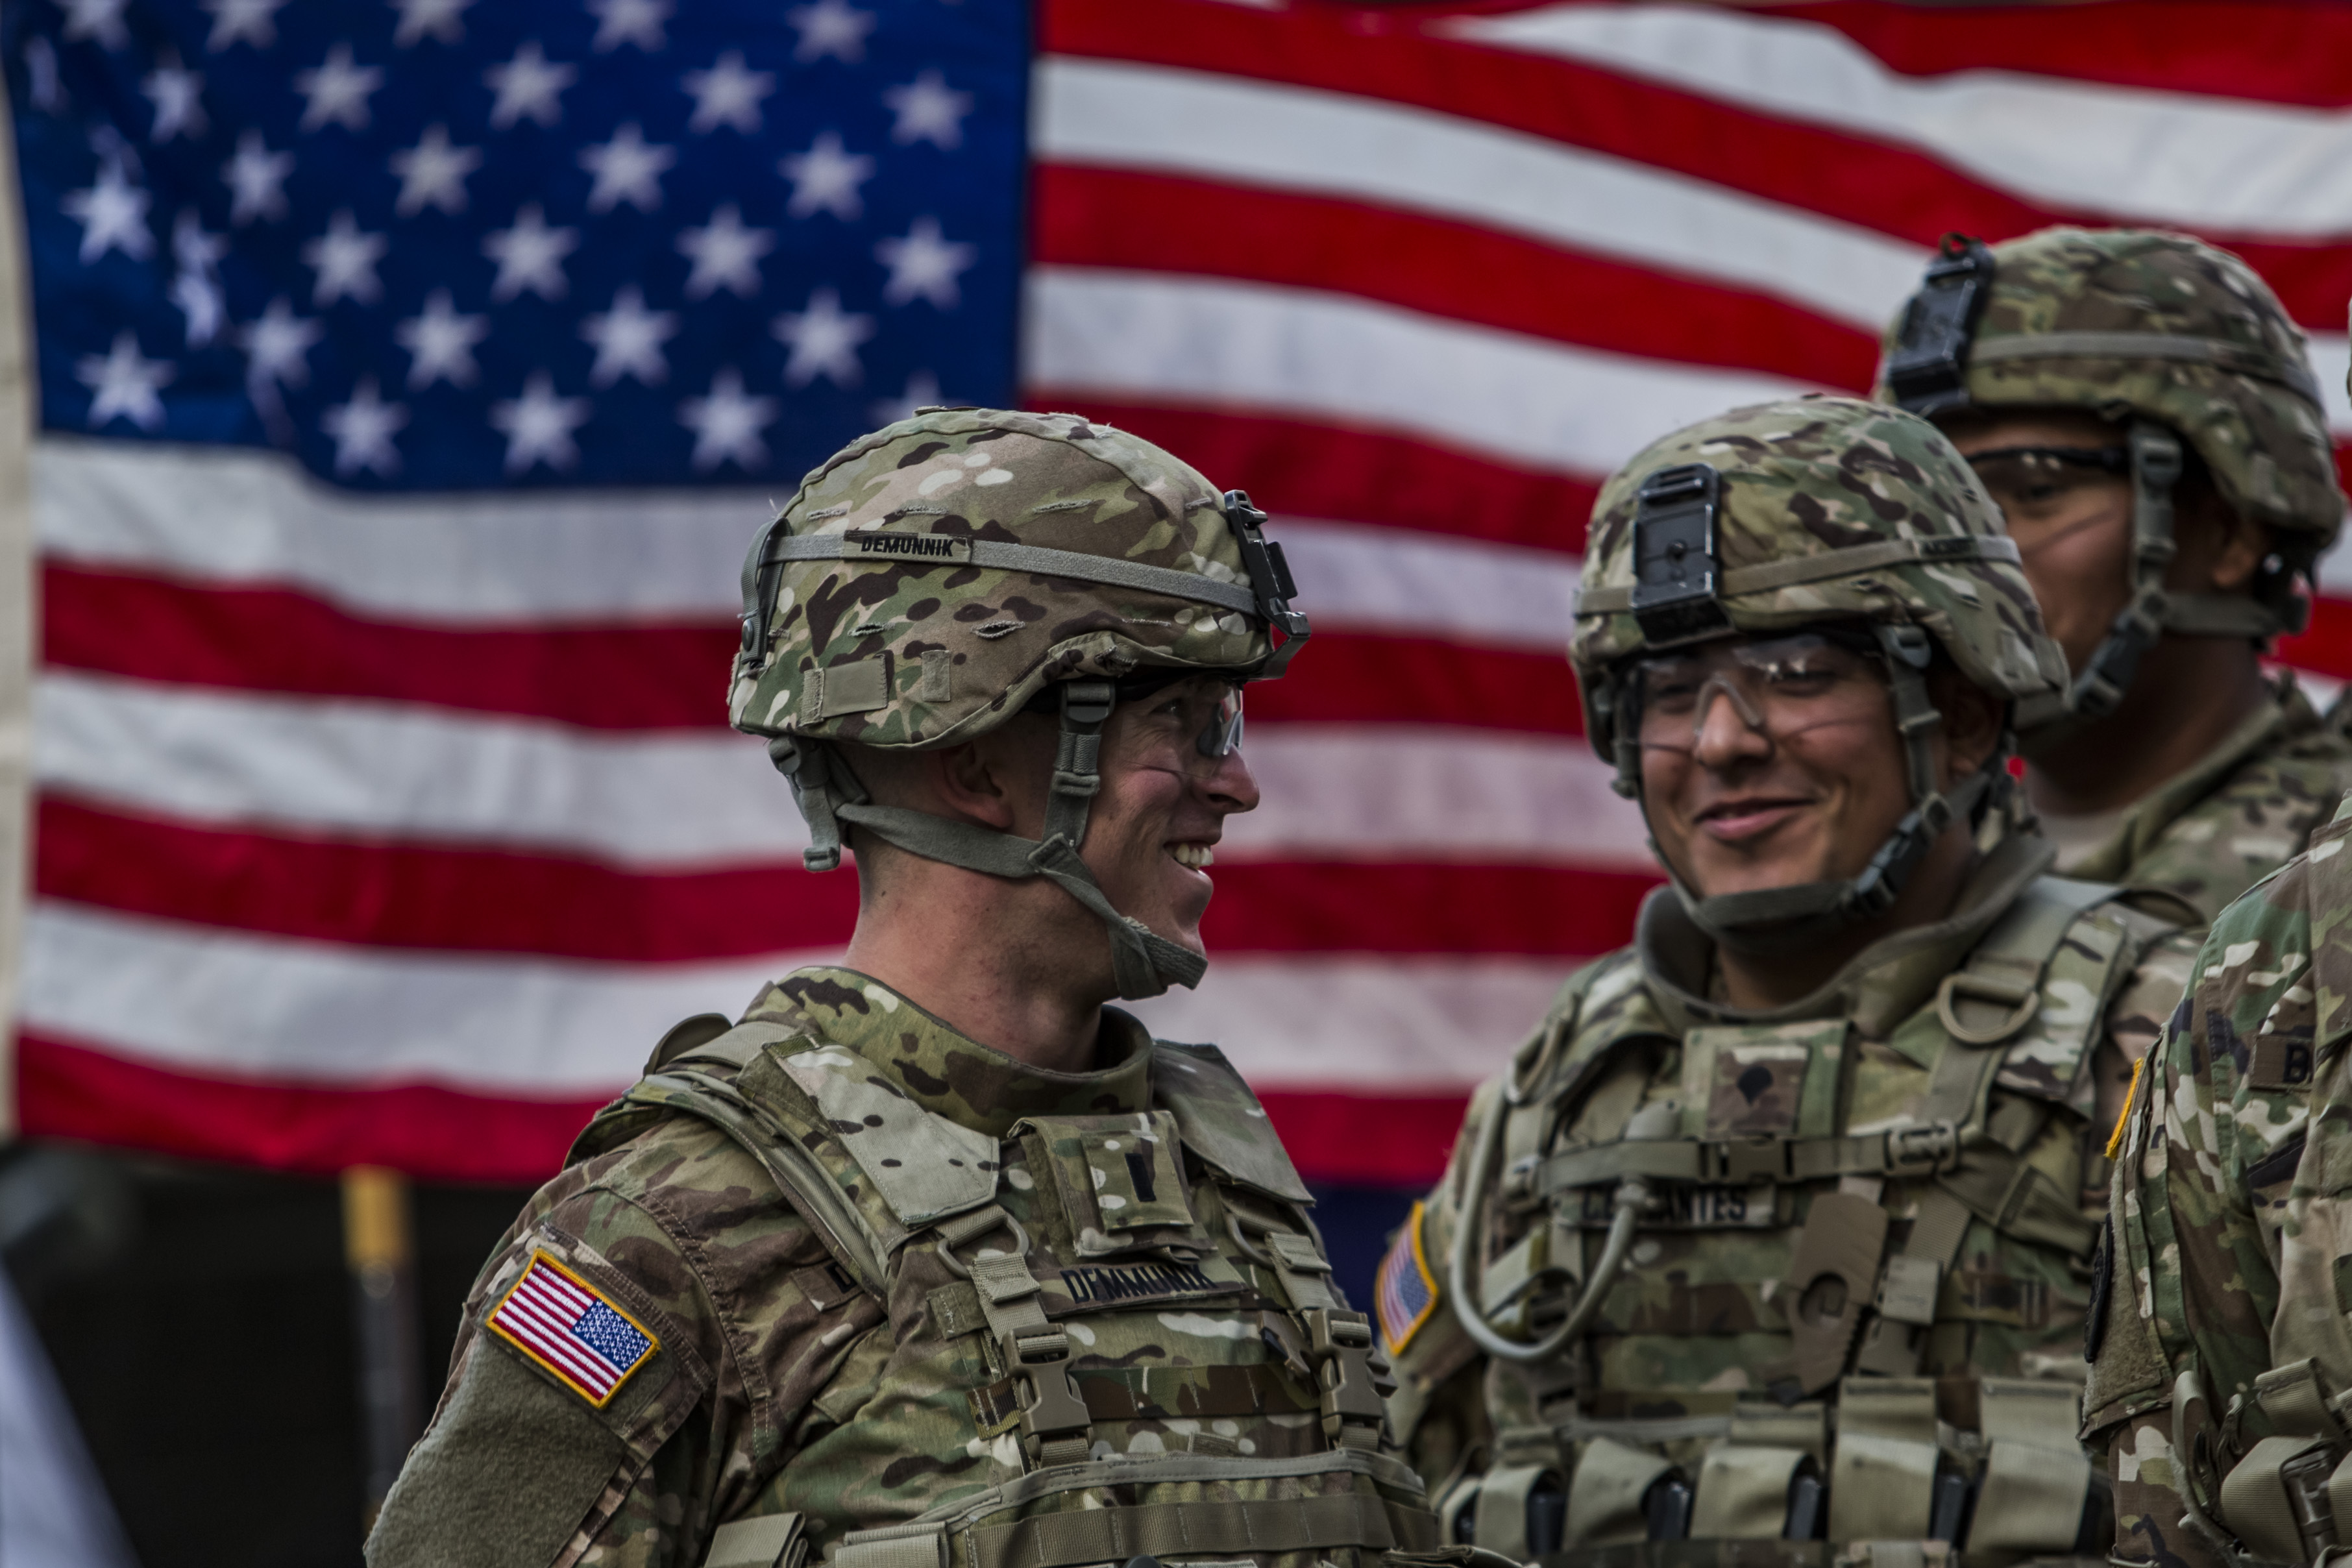 U.S. soldiers from the 2nd Cavalry Regiment  before arrival of NATO Secretary General Jens Stoltenberg at the Czech army barracks on September 9, 2015 in Prague, Czech Republic. U.S. soldiers were traveling in the 'Danube Ride' convoy from their home base in Vilseck, Bavaria, Germany to Hungary.